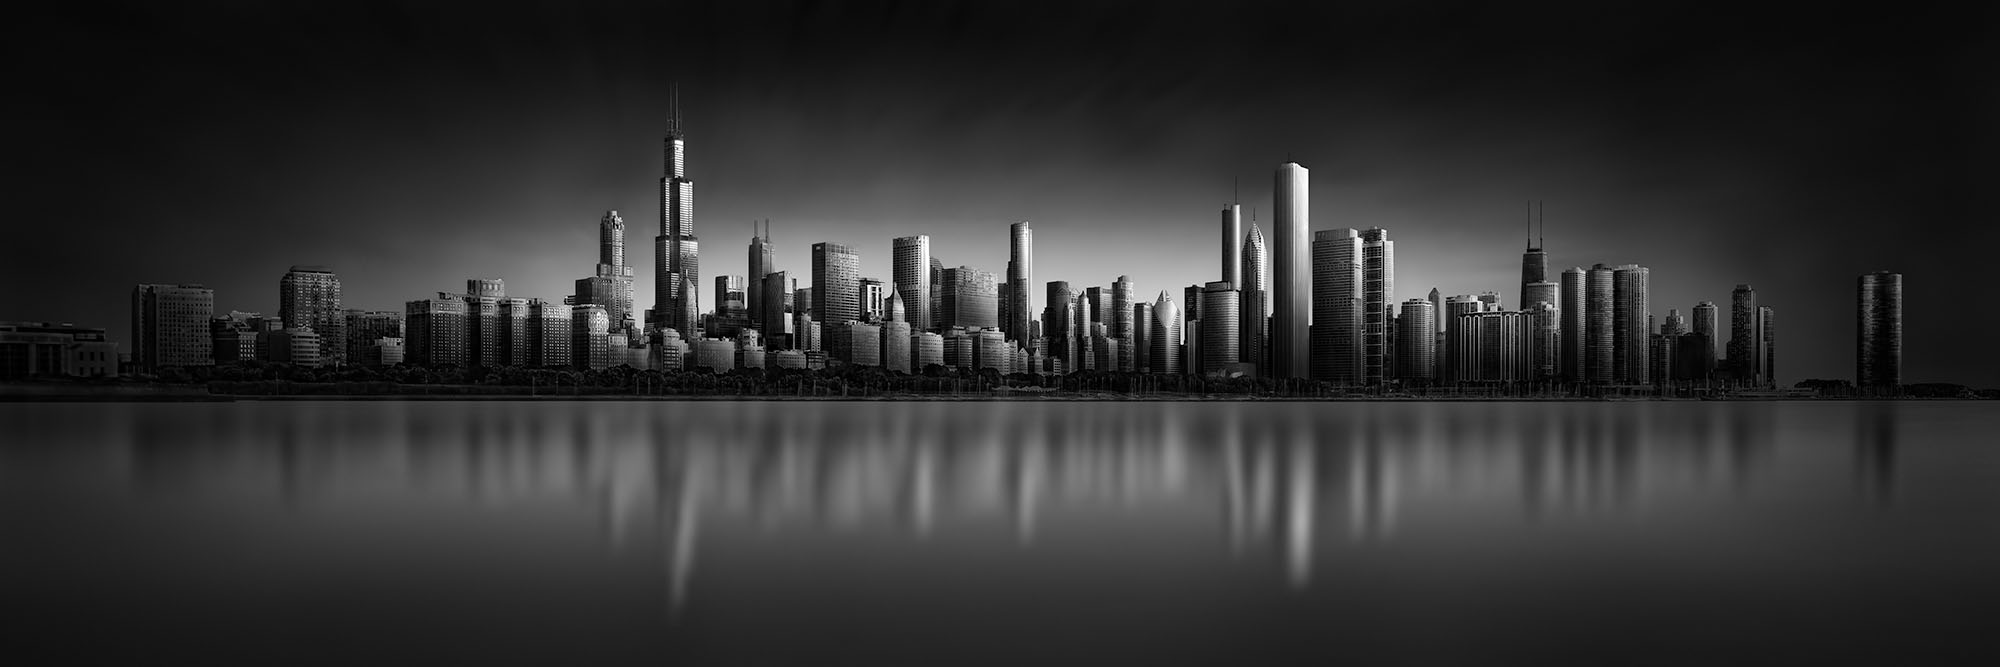 Mirroring Fantasy - Chicago Skyline © Julia Anna Gospodarou